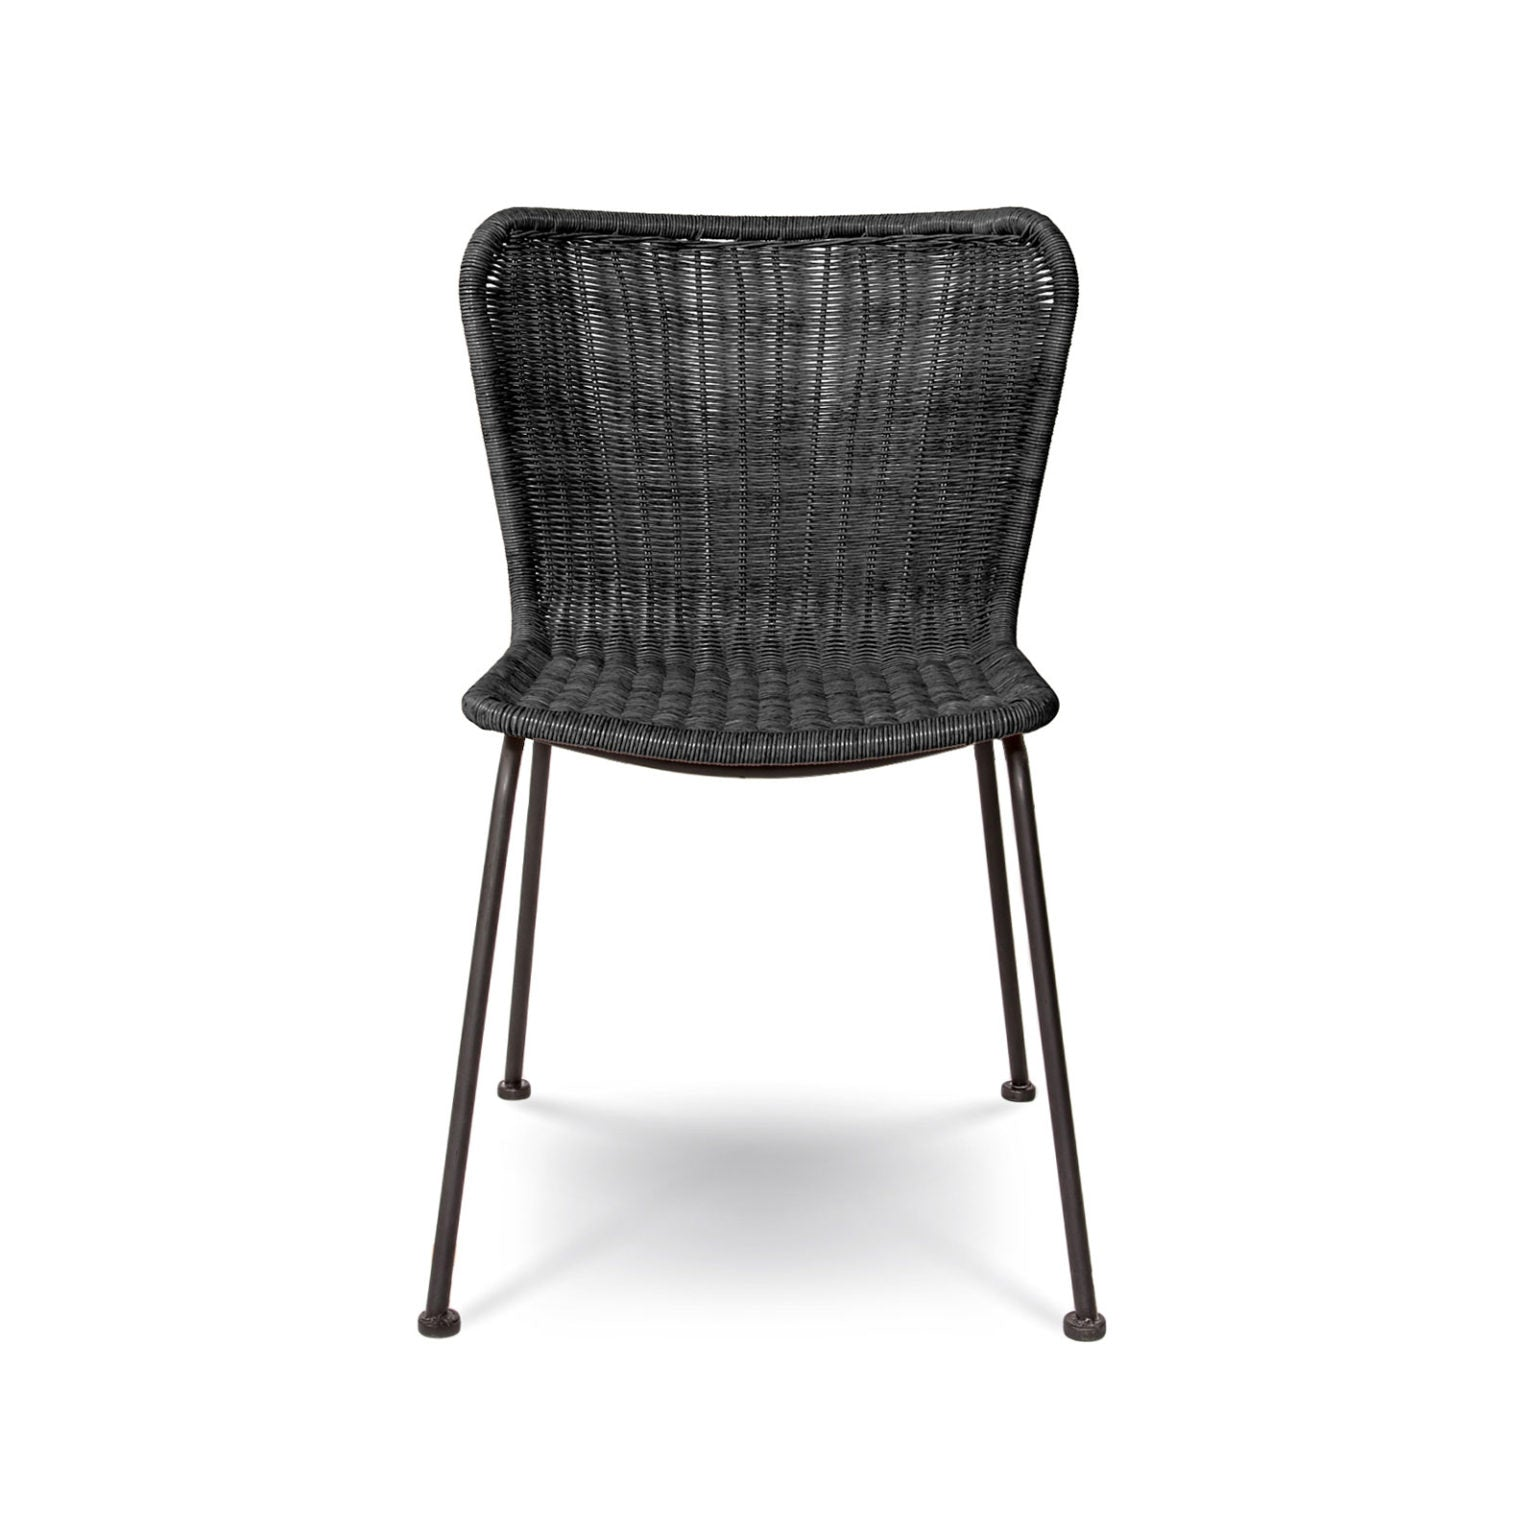 Callie Woven Dining Chair - Rug & Weave